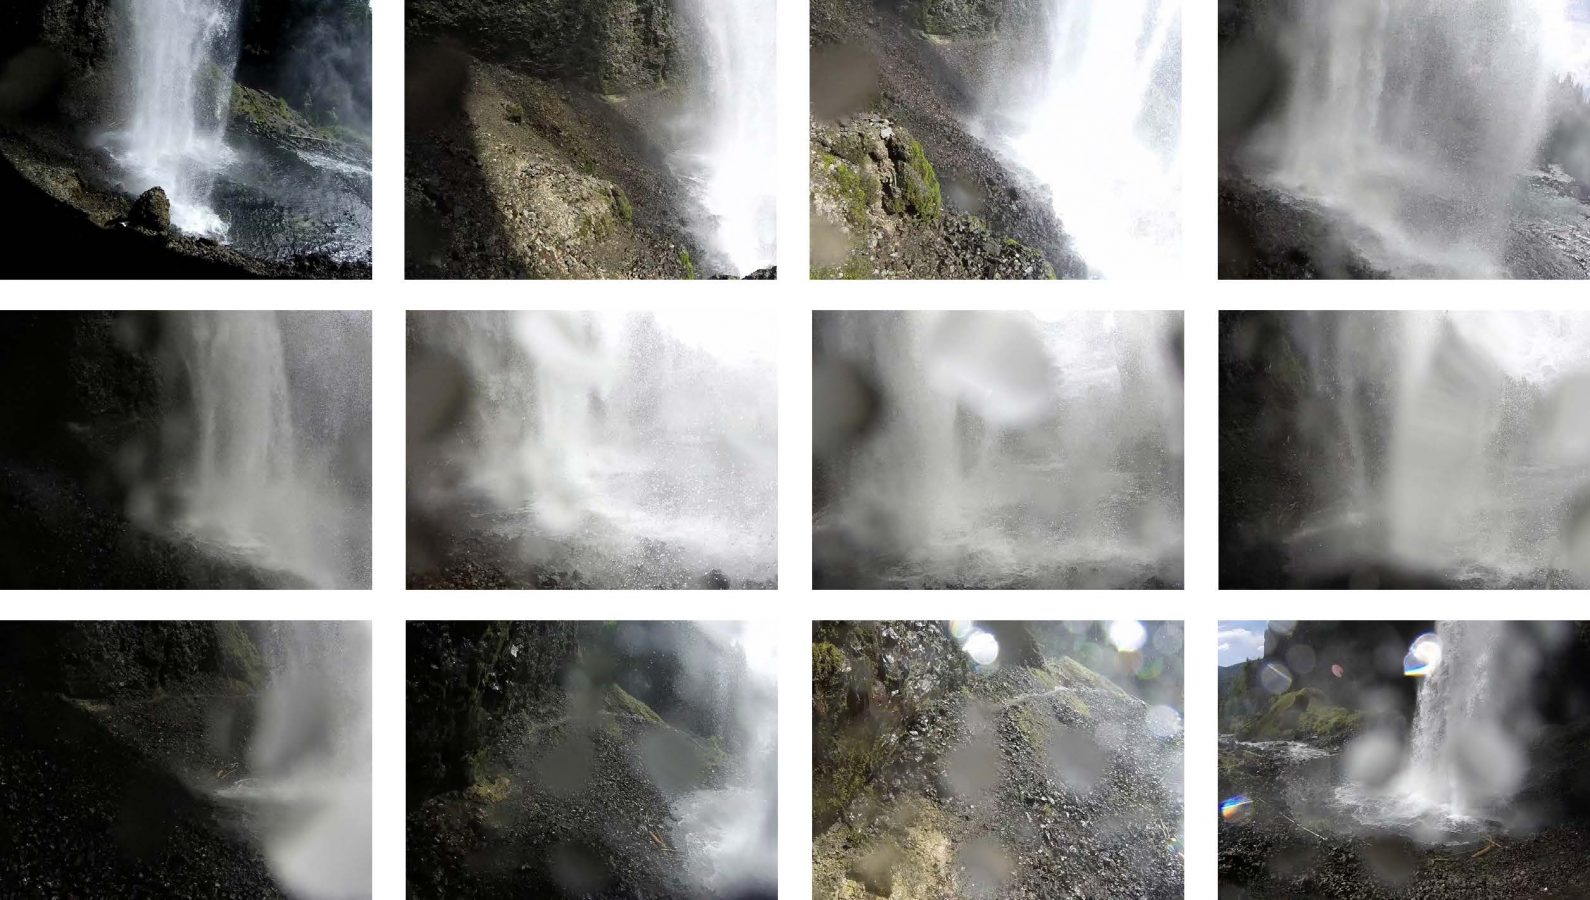 THESIS: Mediations of Shattered Water: Environmental Intimacy & the Dissolution of the Self